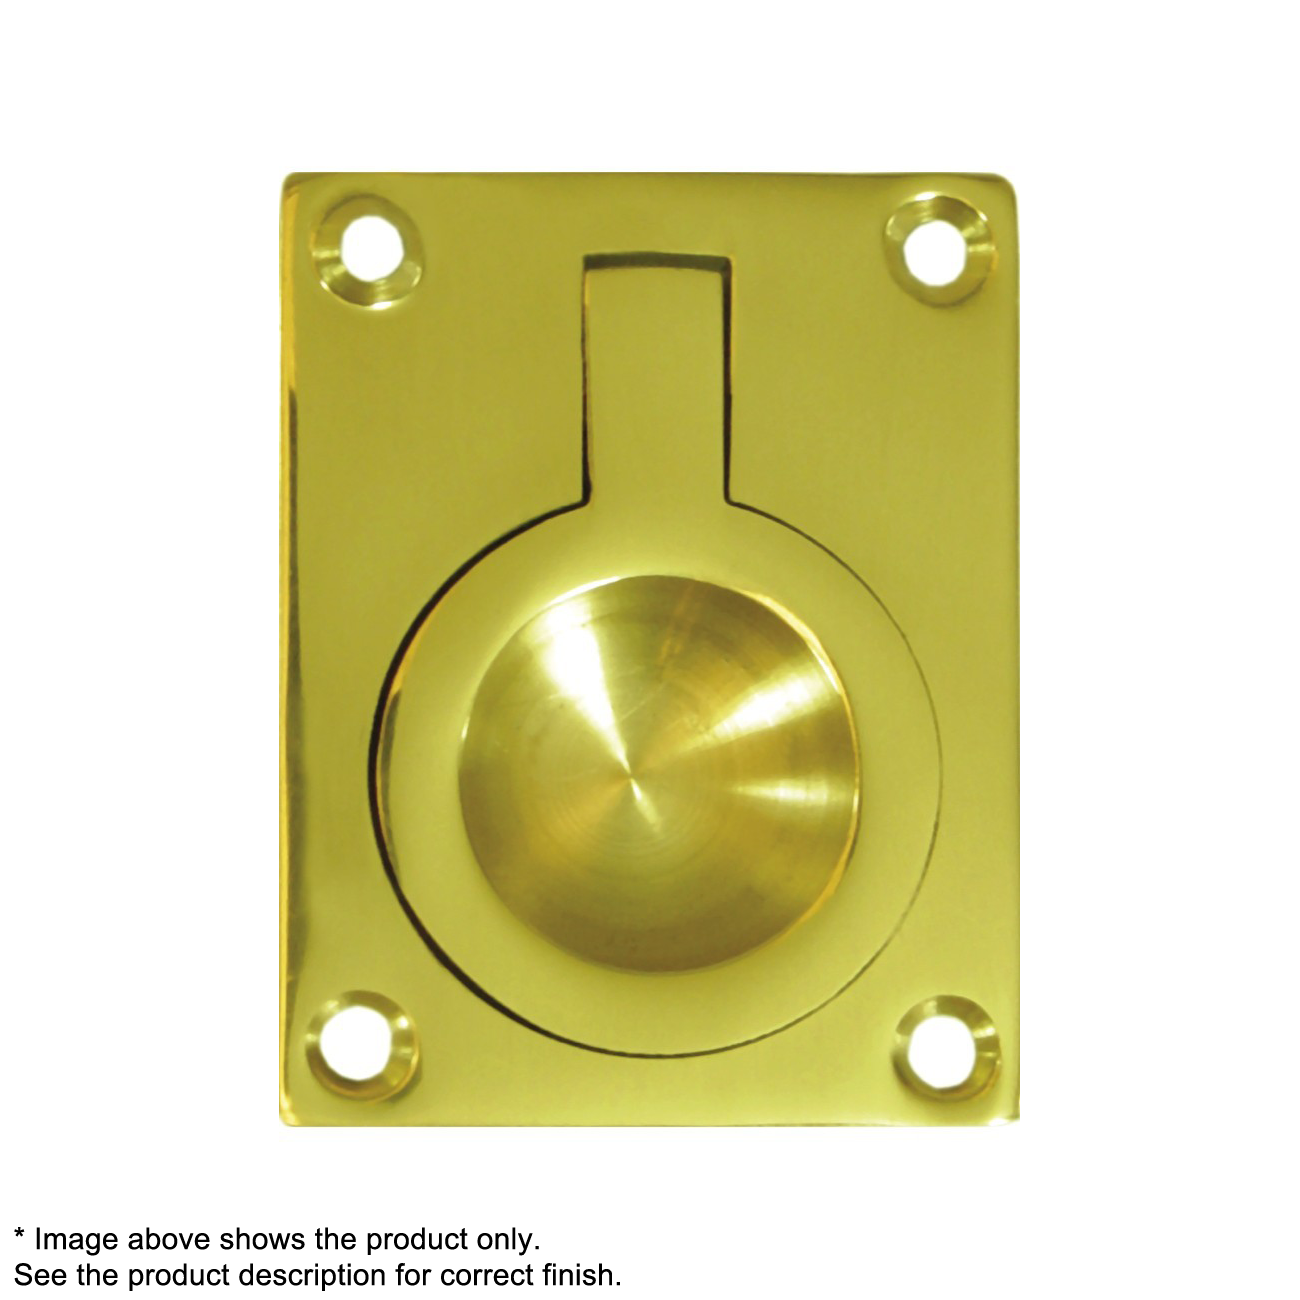 Deltana FRP175CR03, Flush Ring Pull, 1-3/4 x 1-3/8, Lifetime Brass